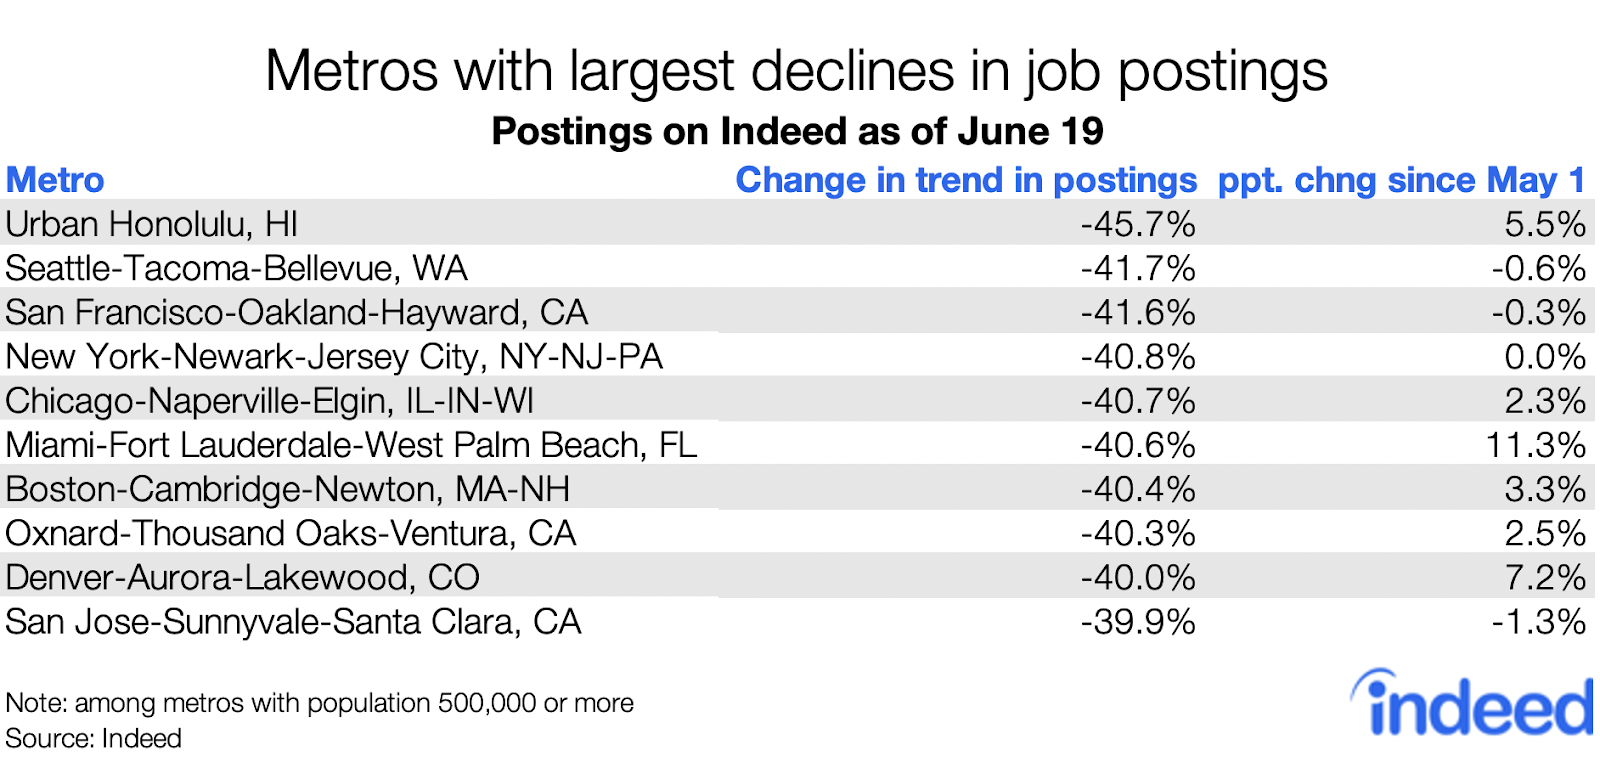 Metros with largest declines in job postings